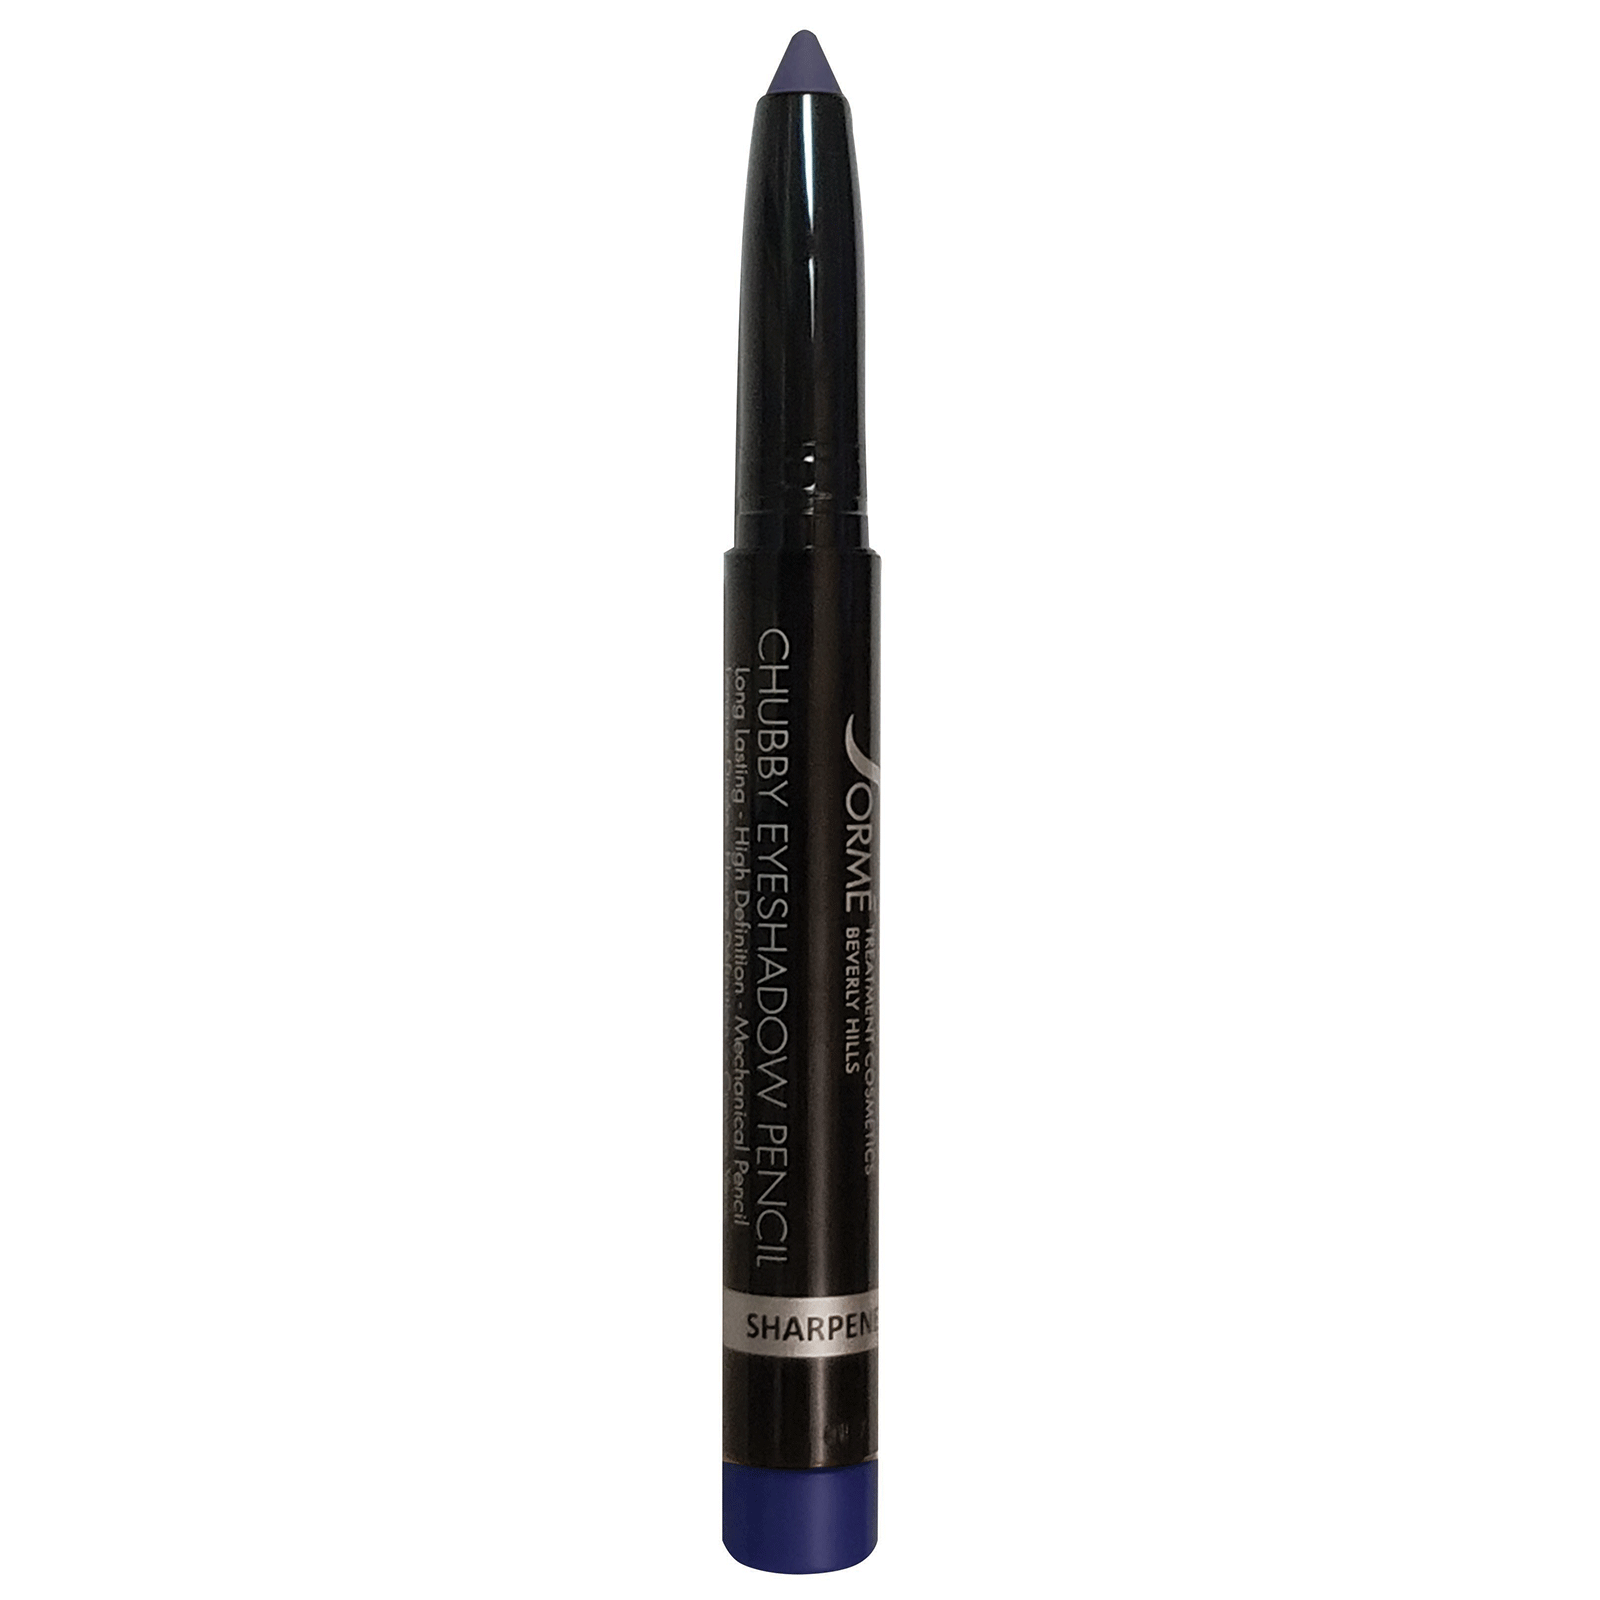 Catwalk Longwear Cream Eye Pencil